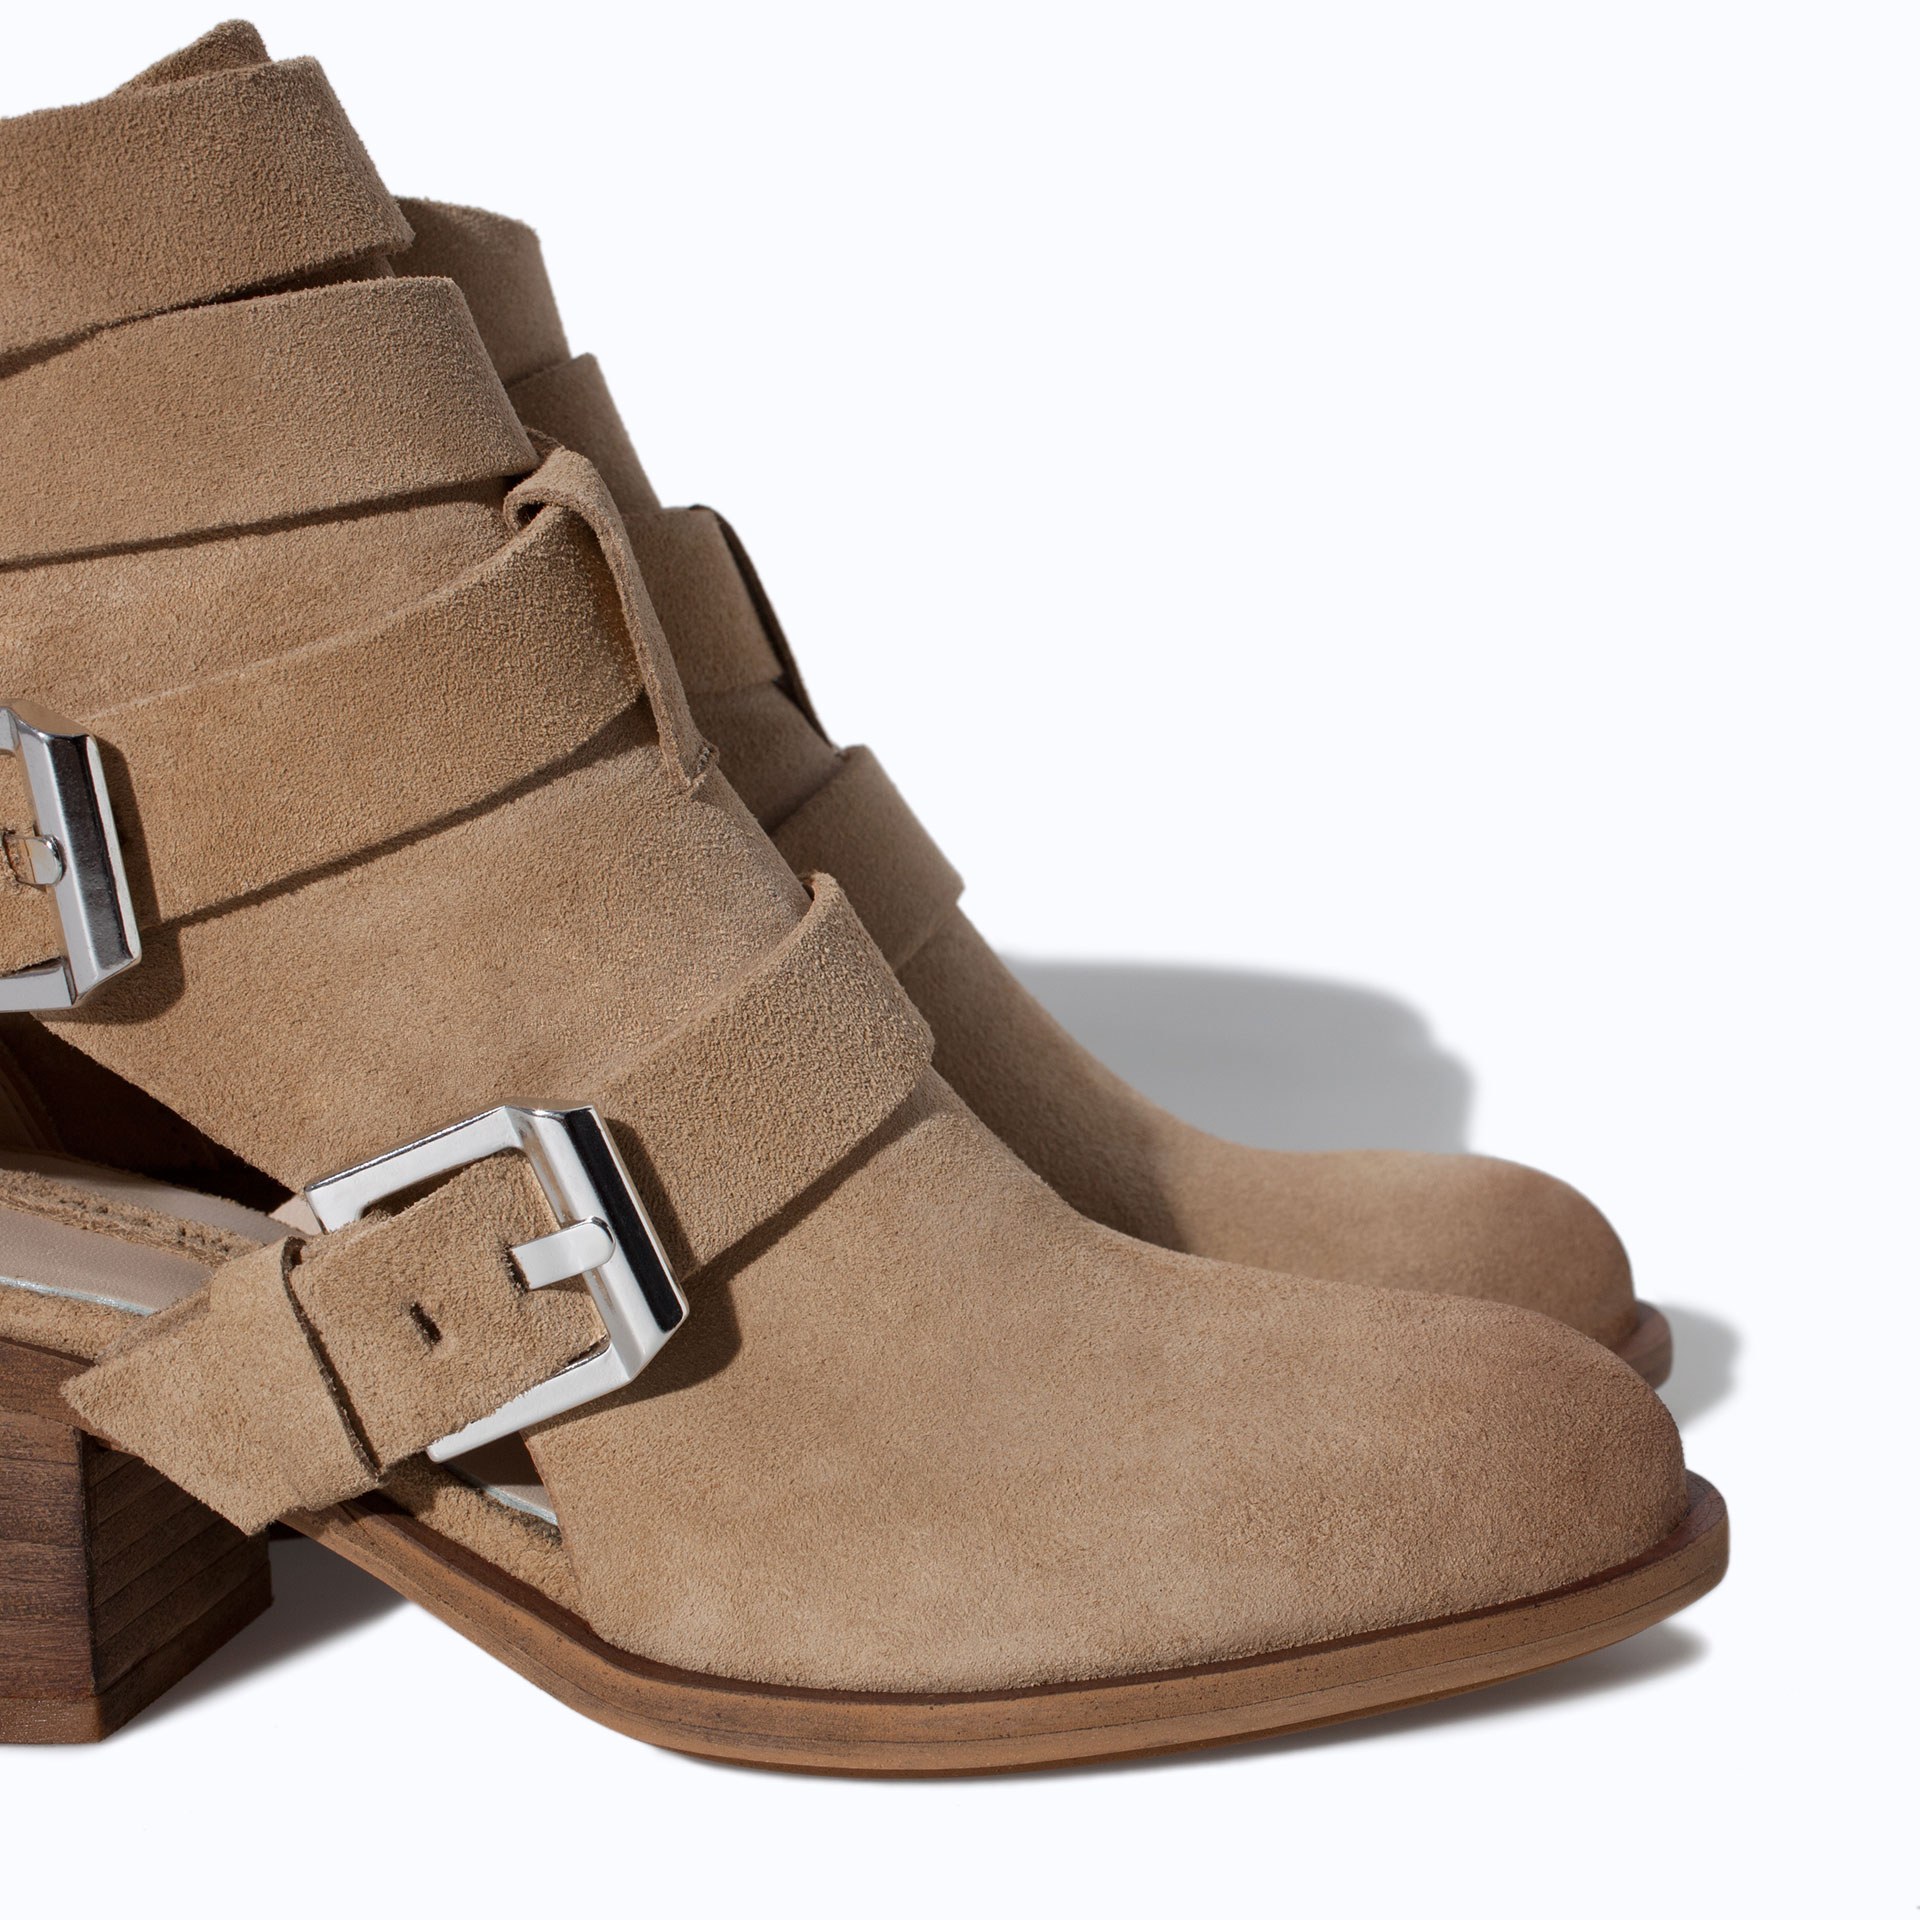 Zara Suede Leather Block Heel Ankle Boot in Brown | Lyst